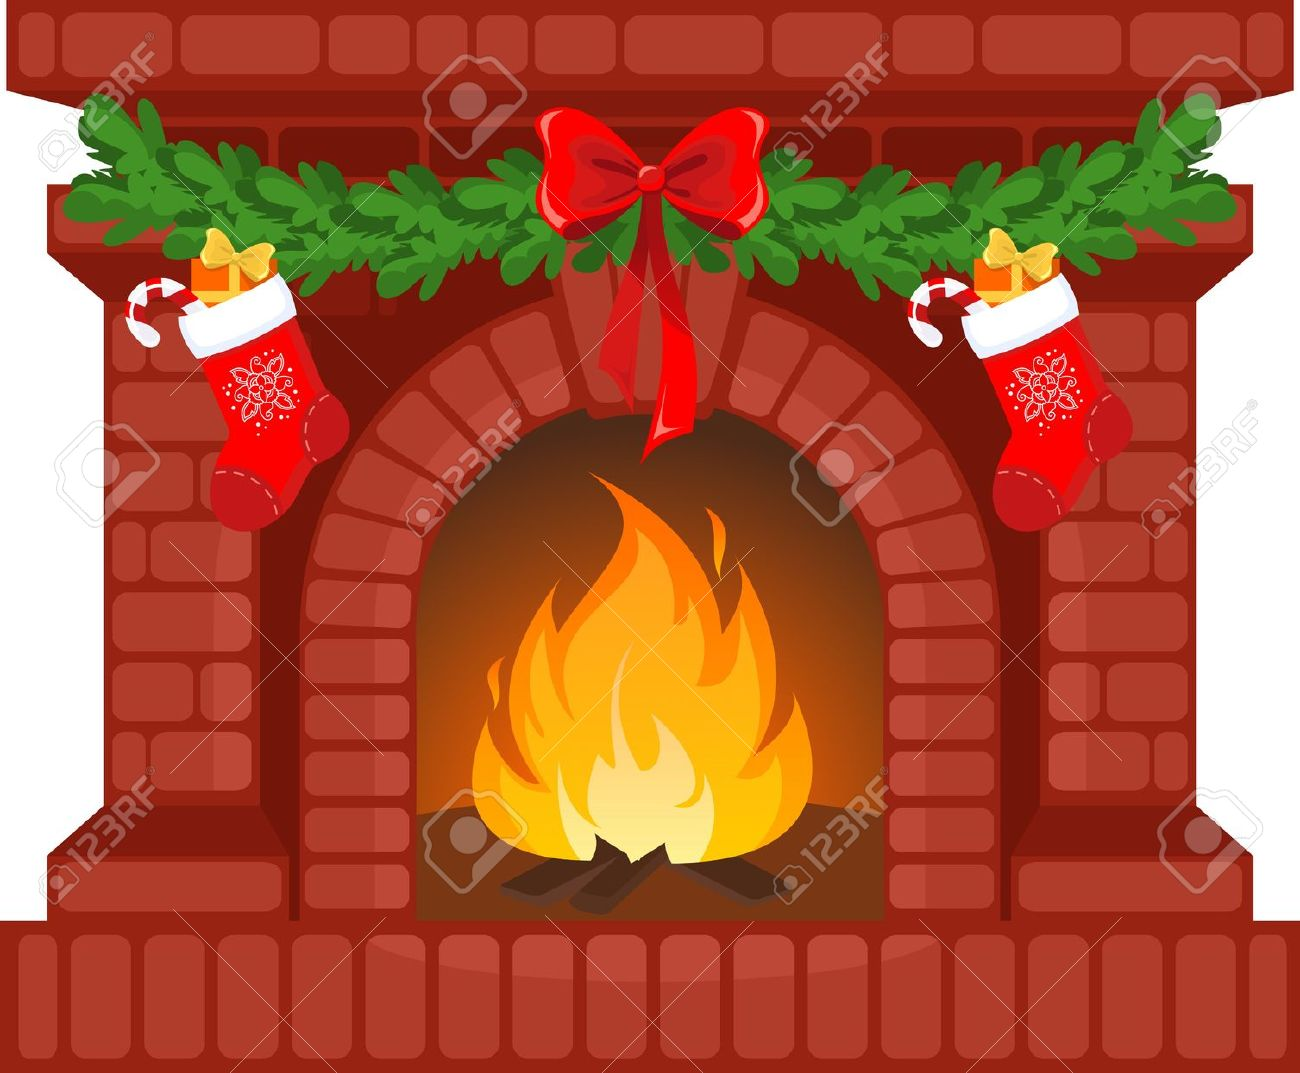 Christmas chimney clipart.